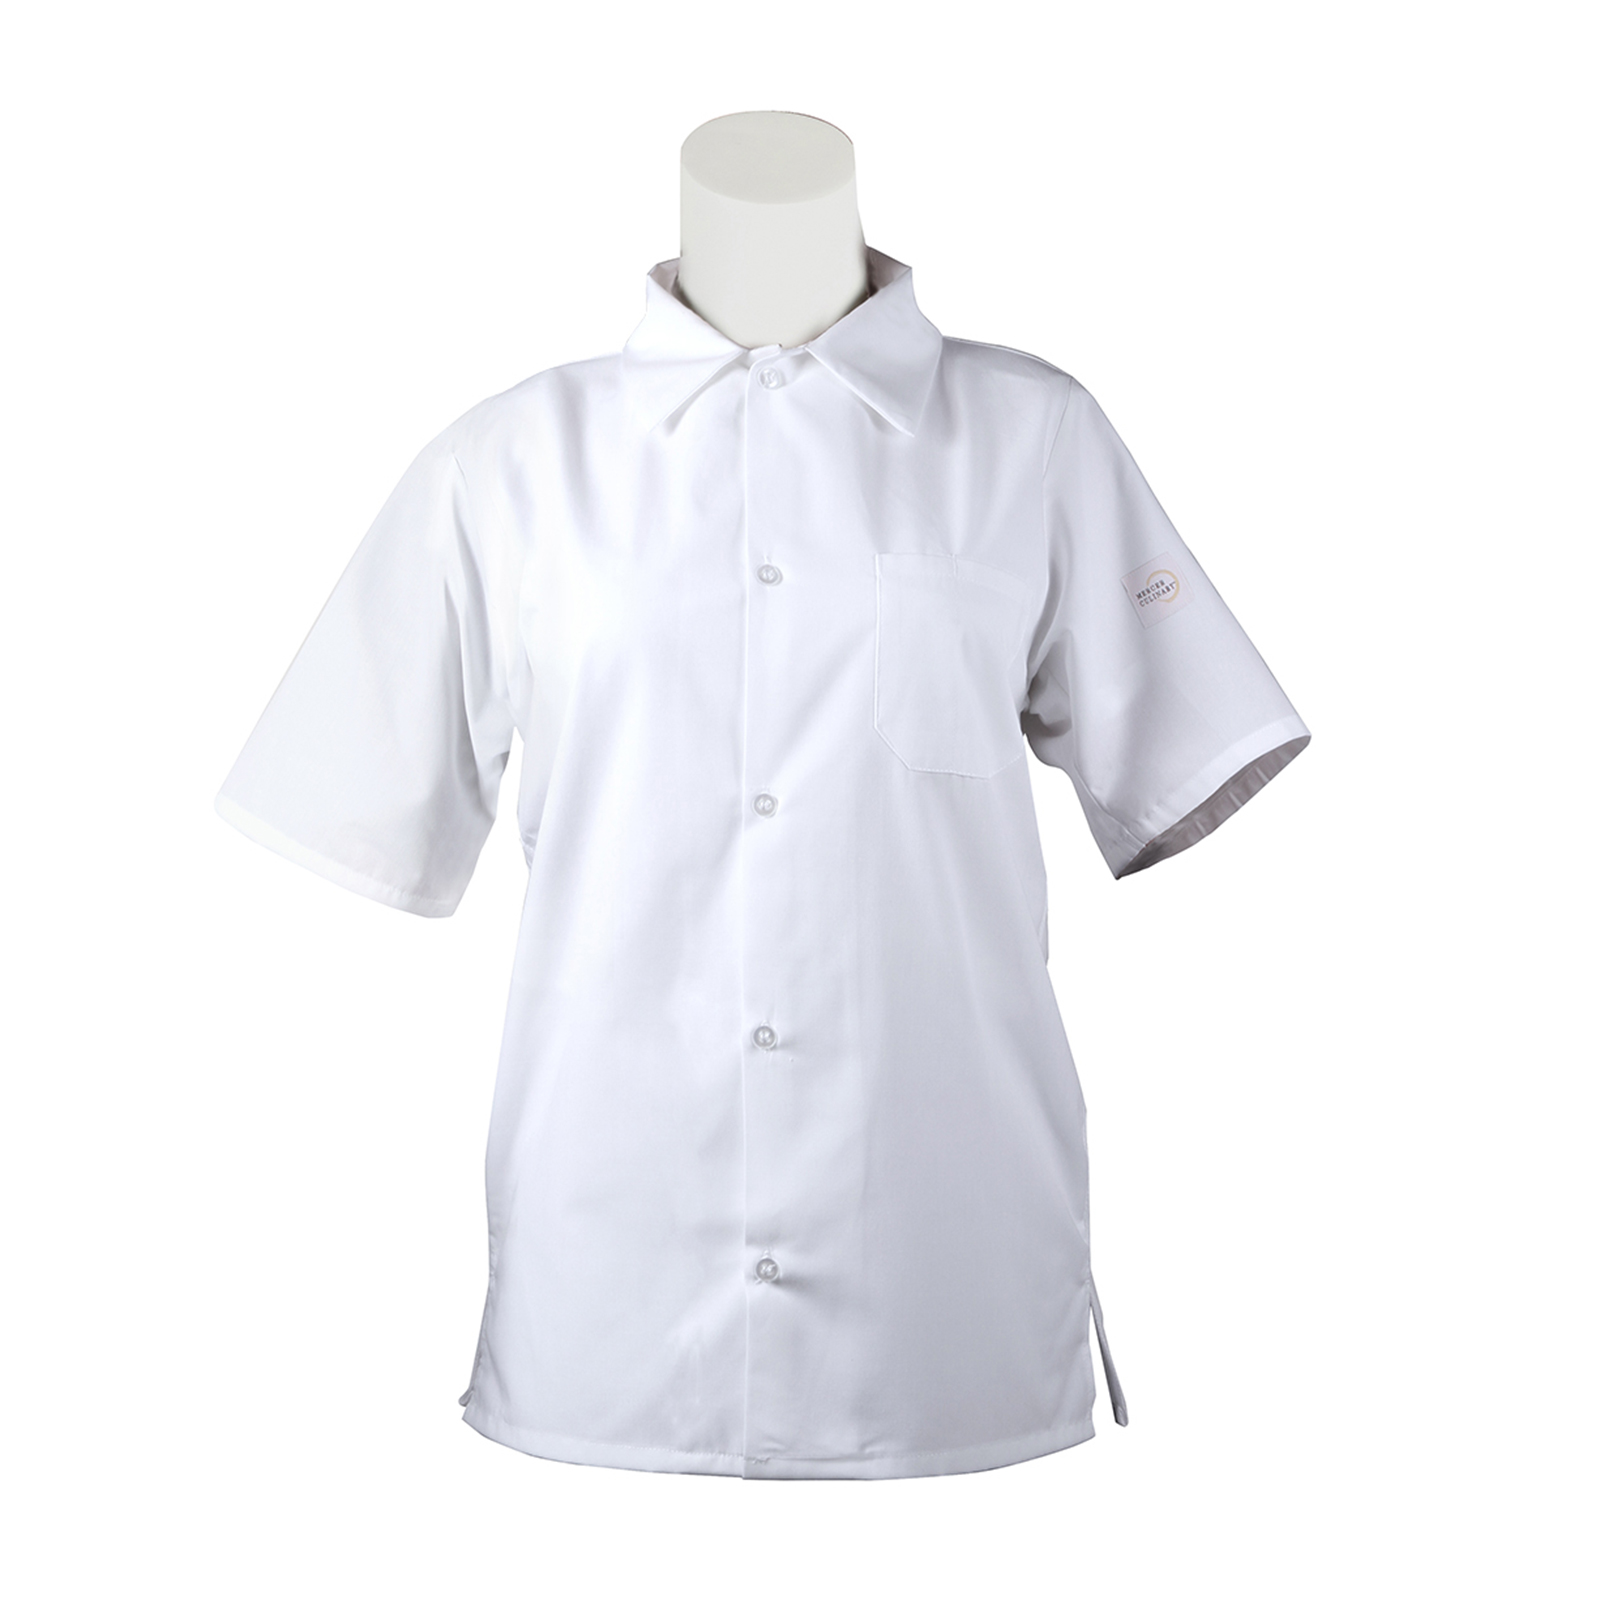 Mercer Culinary M60200WH1X cook's shirt